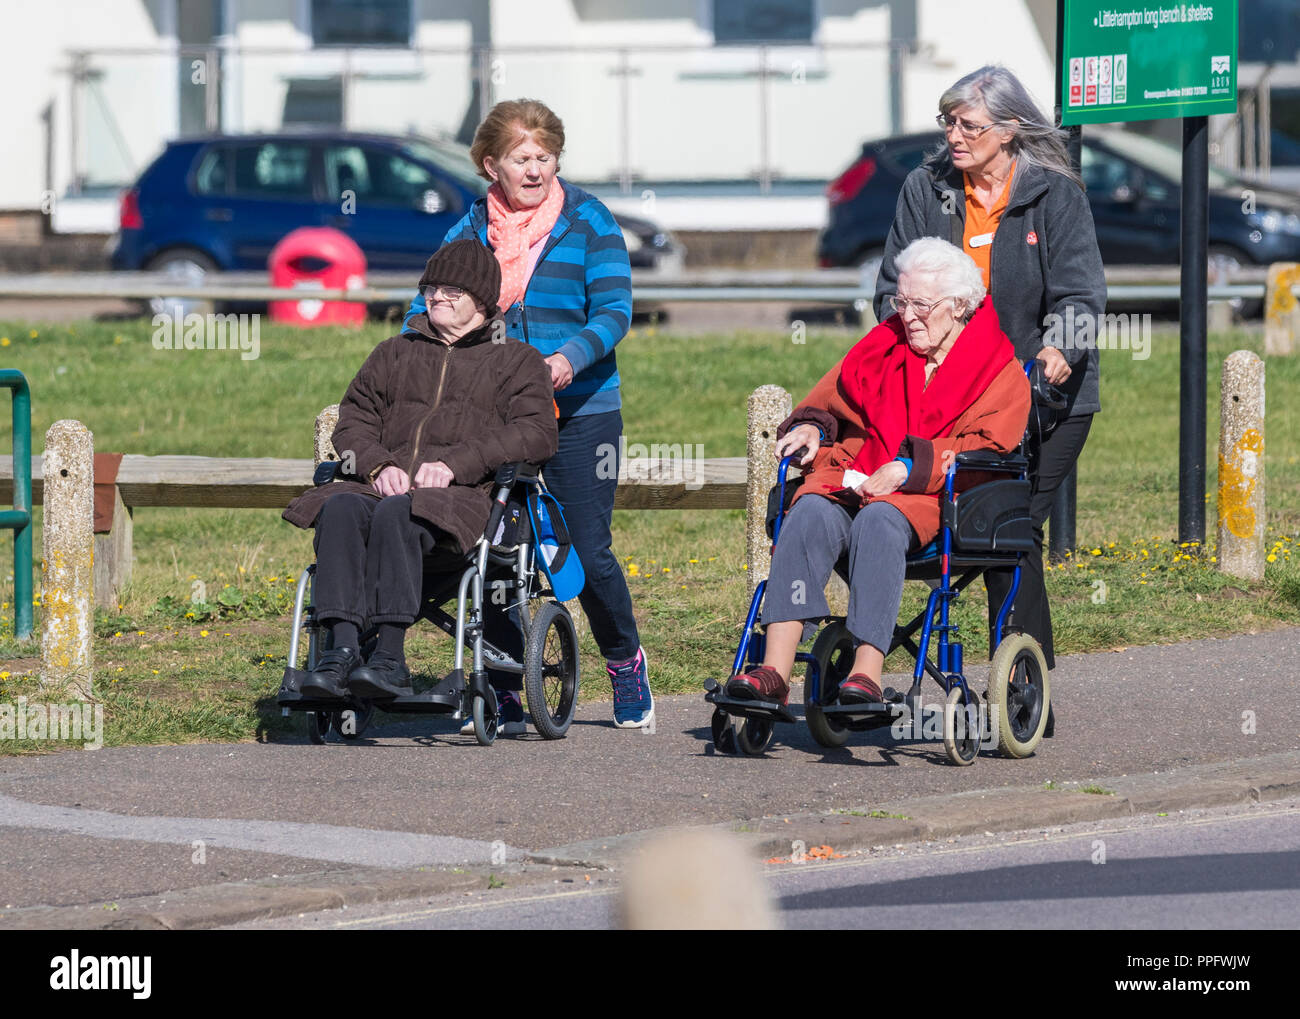 People pushing elderly disabled people in wheelchairs in the UK. - Stock Image